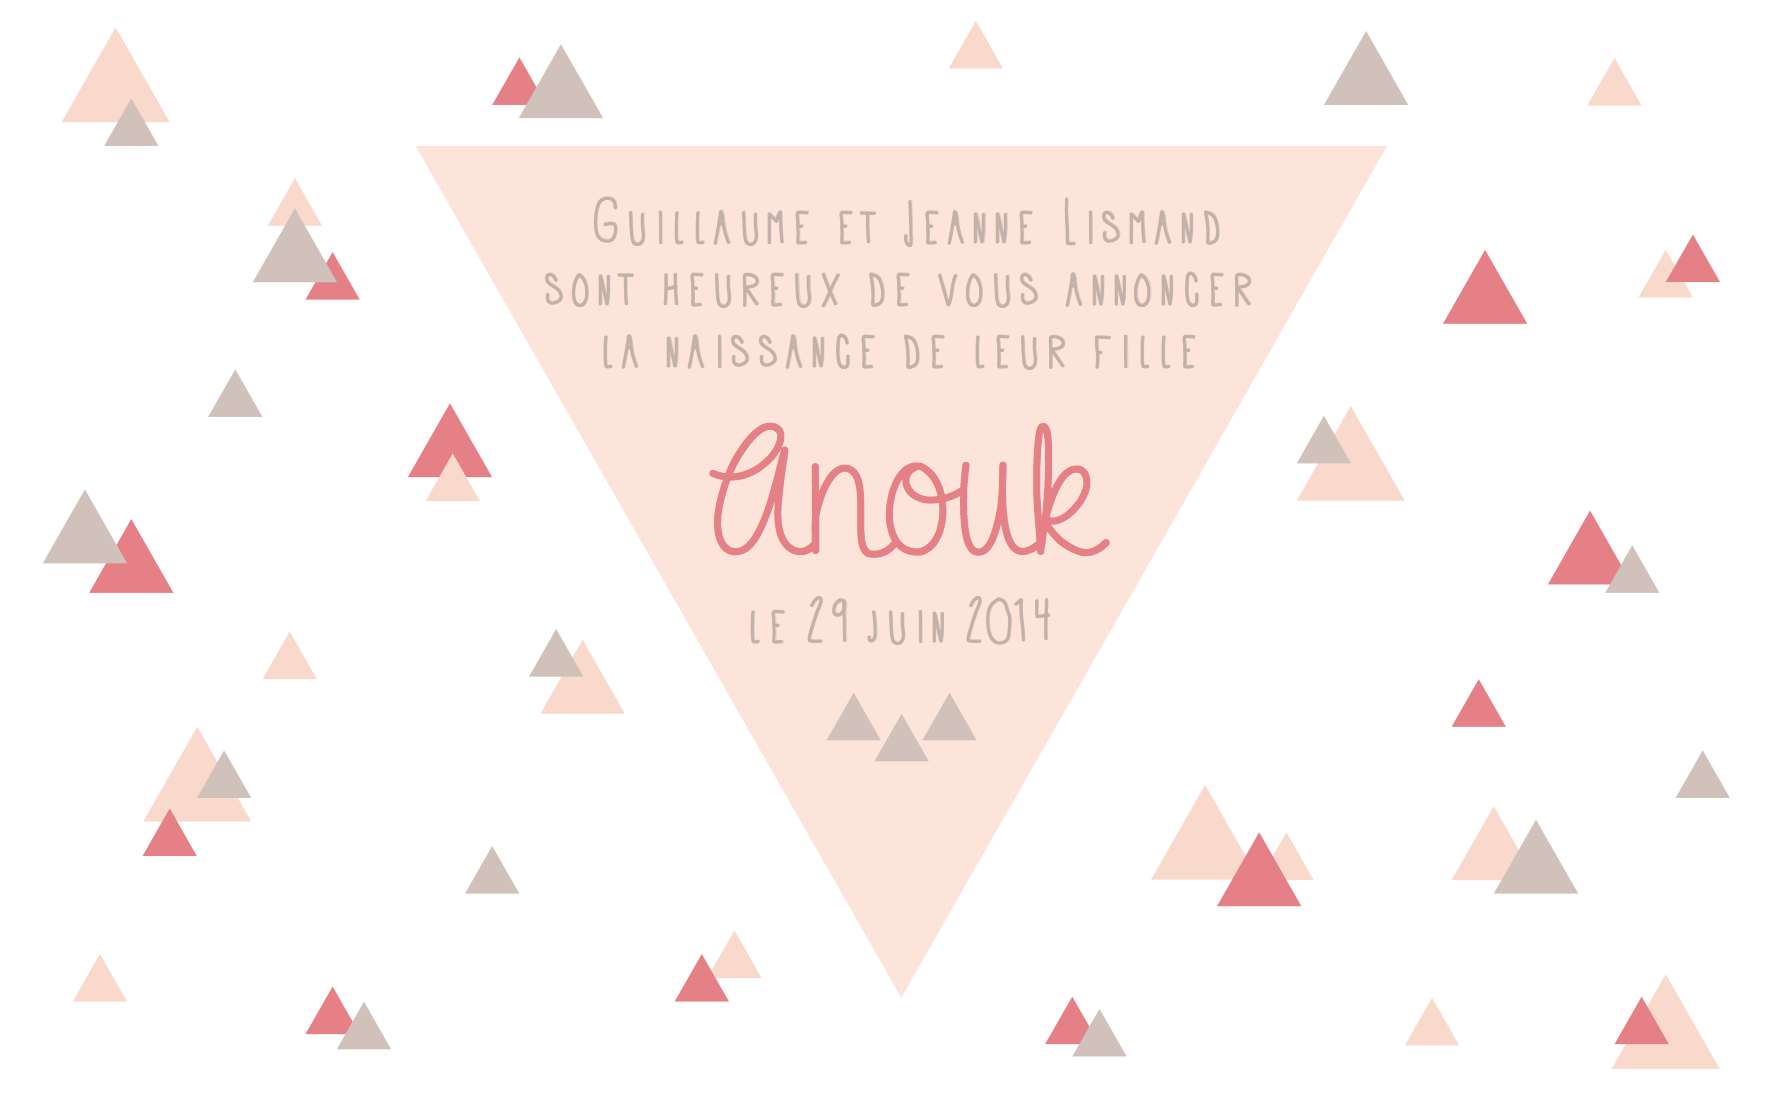 Anouk rectangulaire recto 1.png